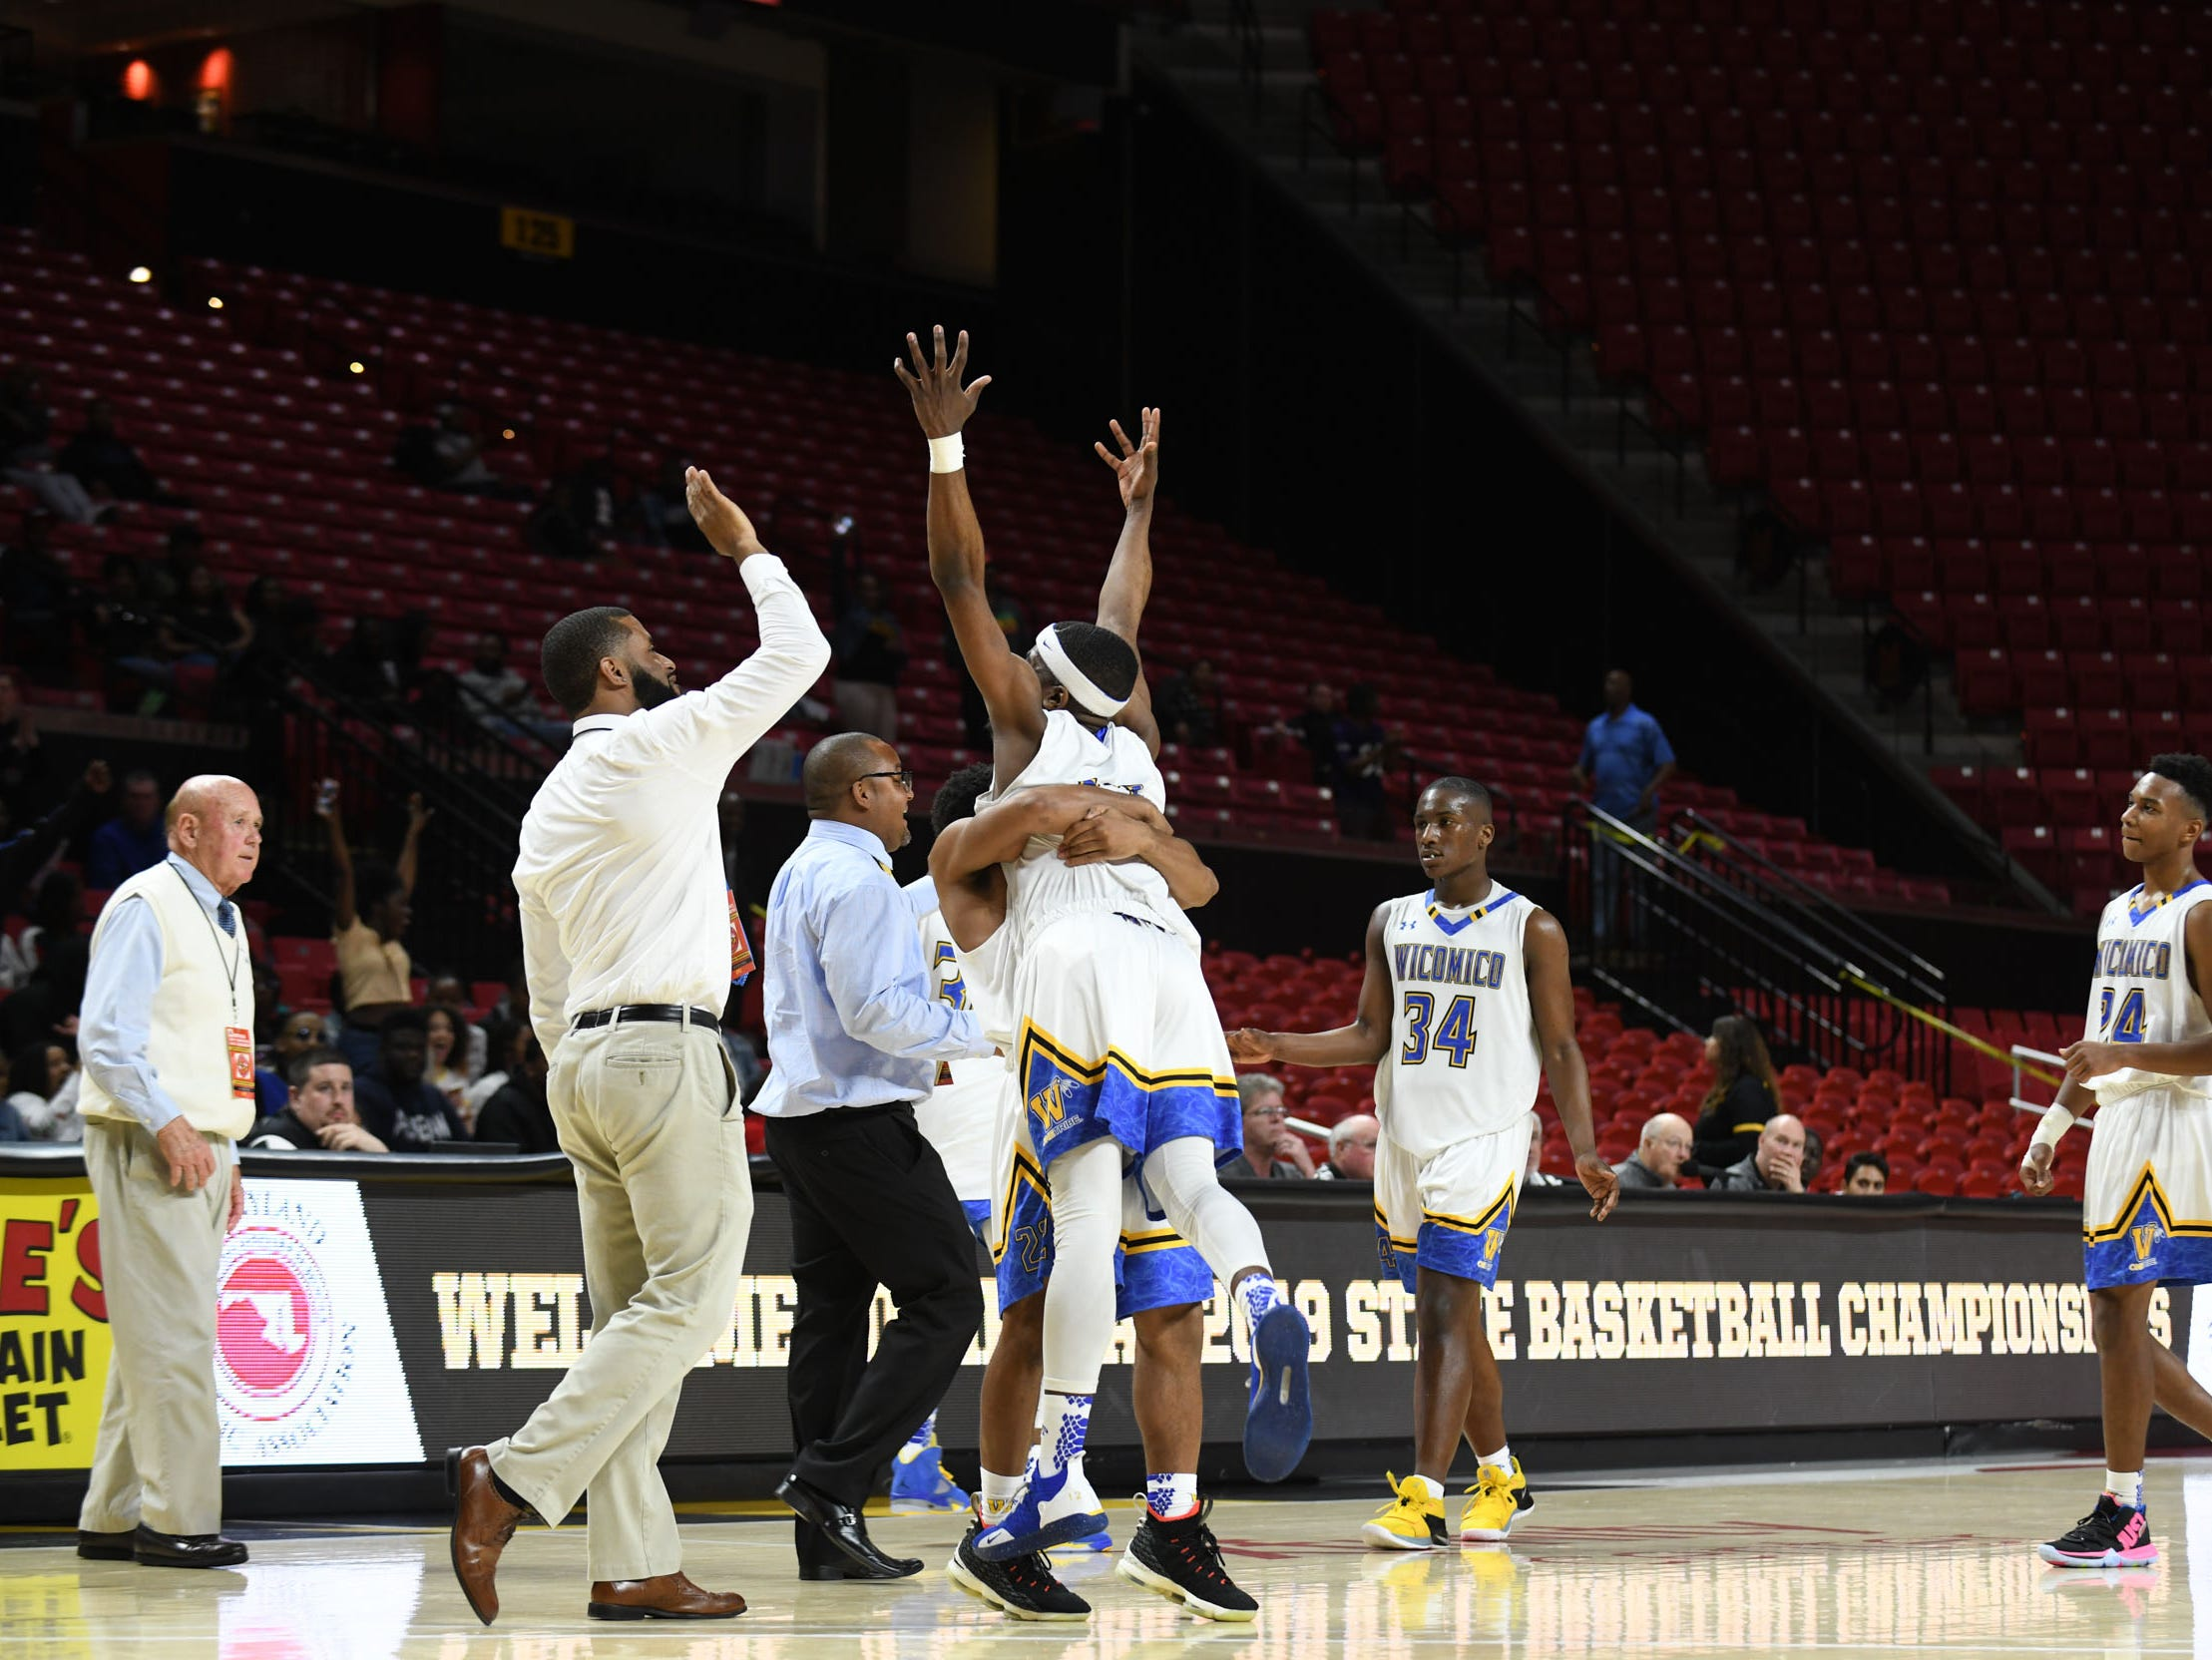 Wi-Hi celebrates after extending the lead against Oakdale during the MPSSAA semifinals at the Xfinity Center in College Park, Md. Friday, March 15, 2019.